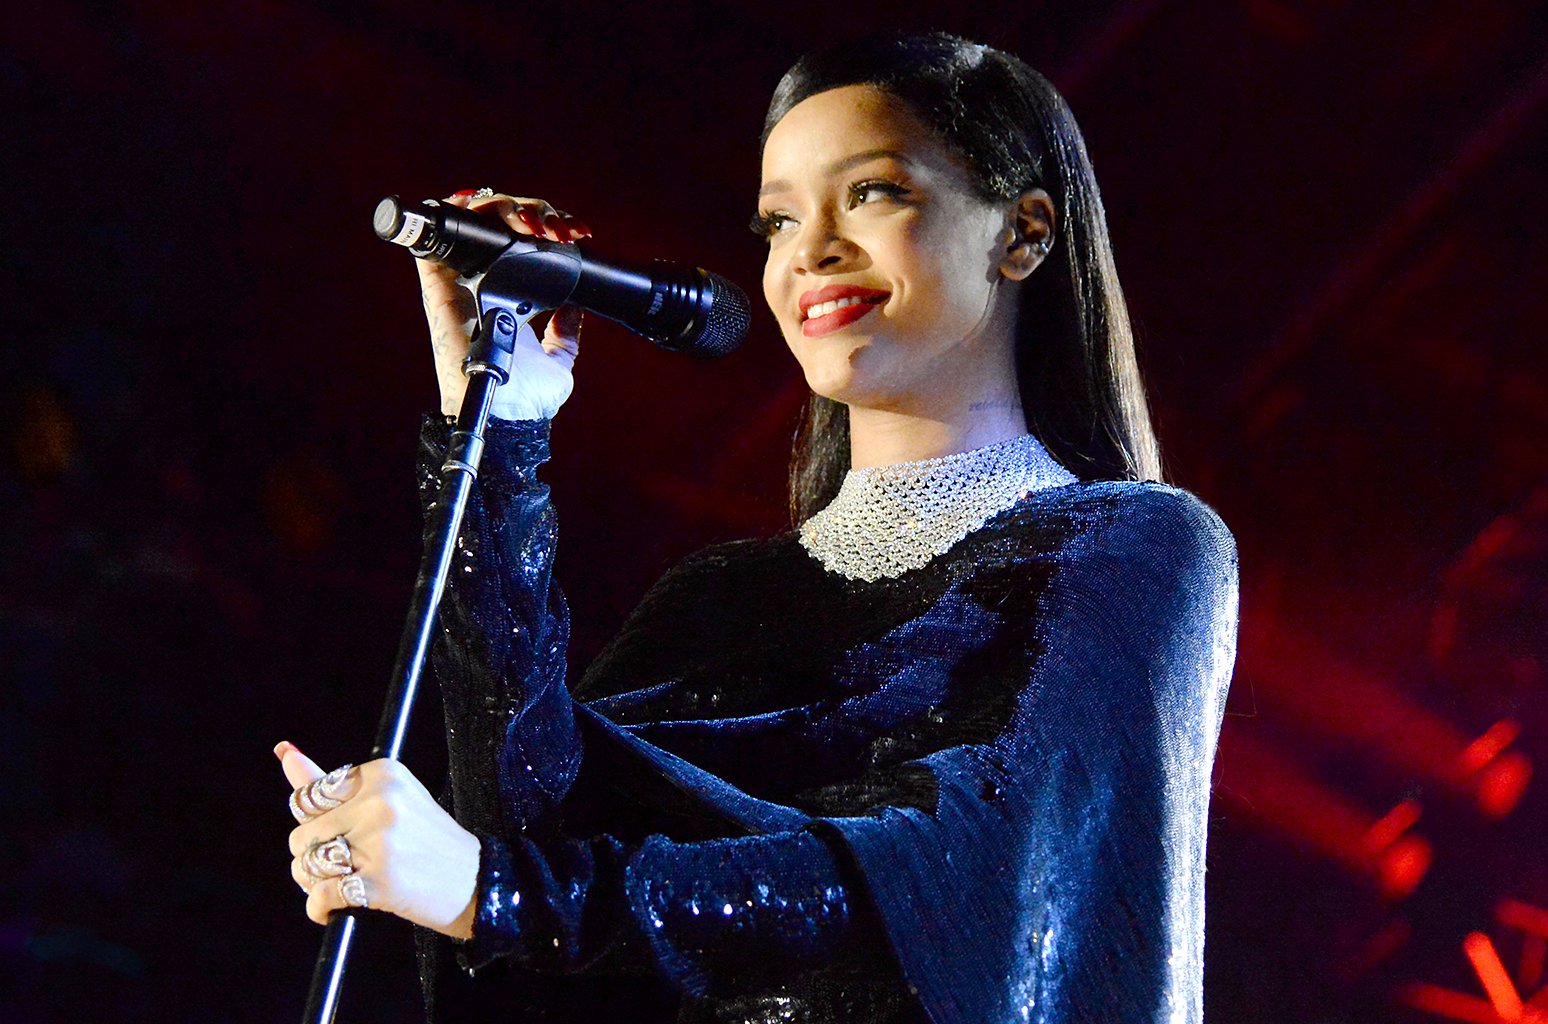 Calvin Harris & Rihanna's 'This Is What You Came For' Gets '80s Power Ballad Redo   Billboard